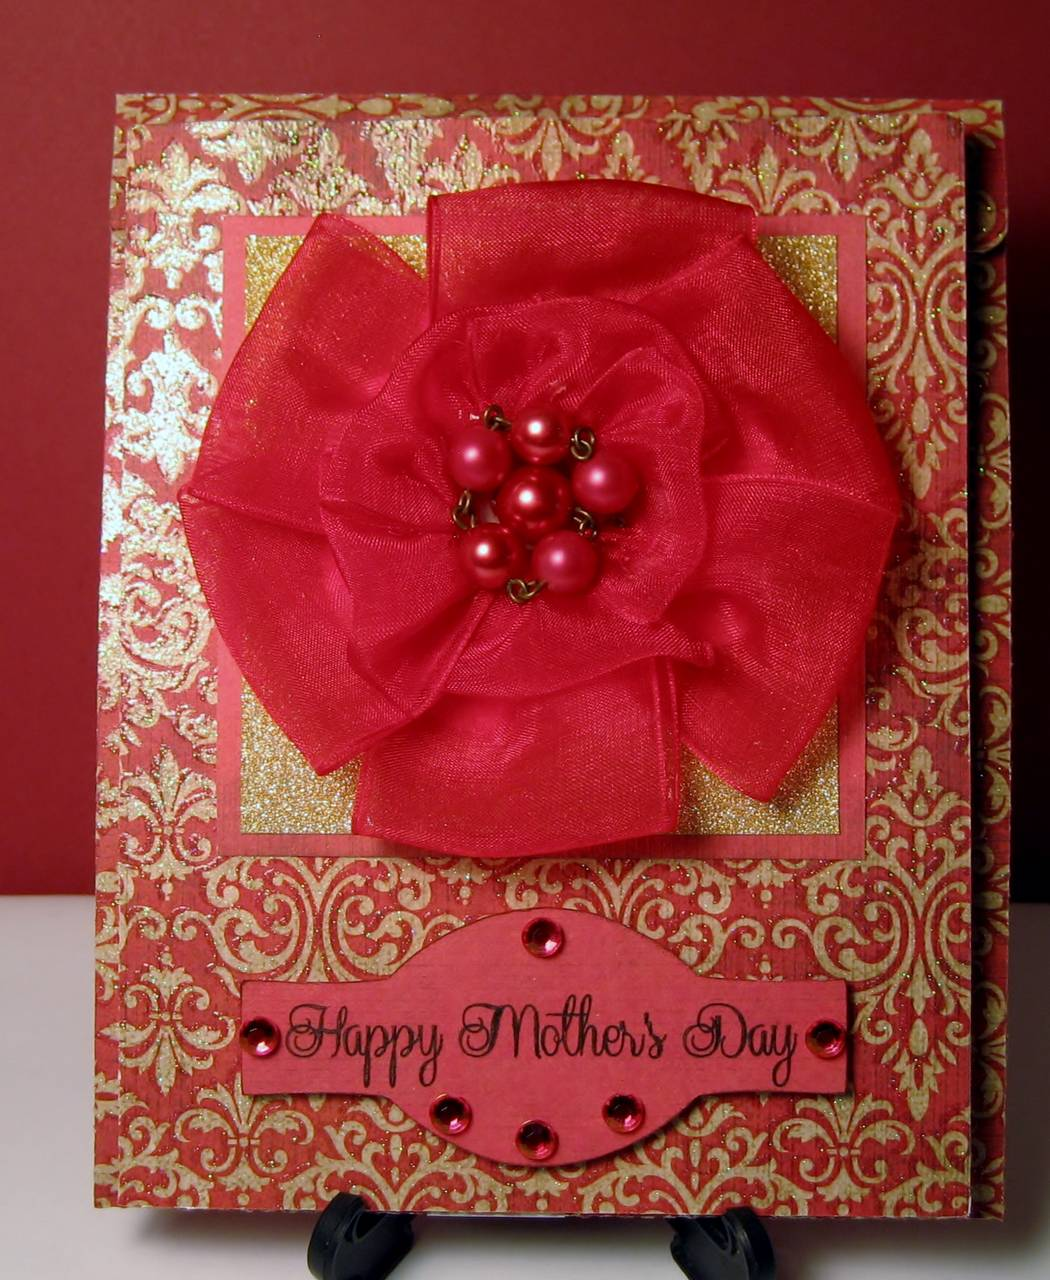 Mothers Day Cards with Ribbon Flowers